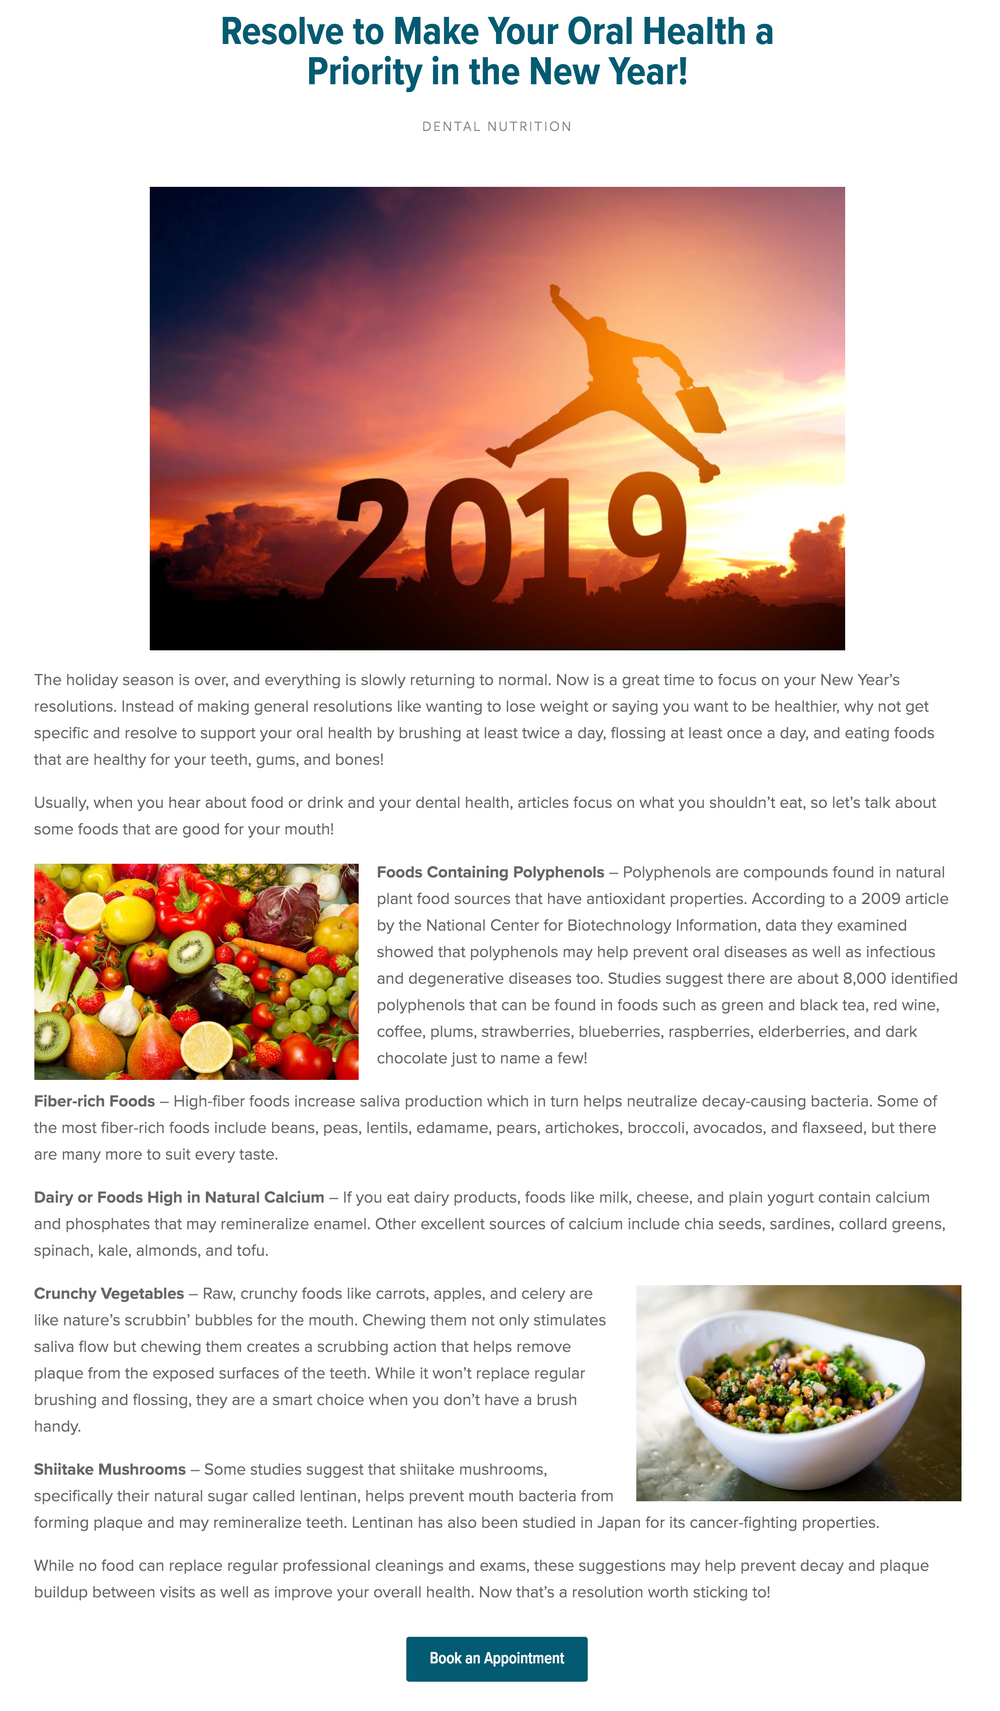 screencapture-legwork-green-squarespace-general-blog-resolve-to-make-your-oral-health-a-priority-in-the-new-year-2018-12-12-14_21_41.png